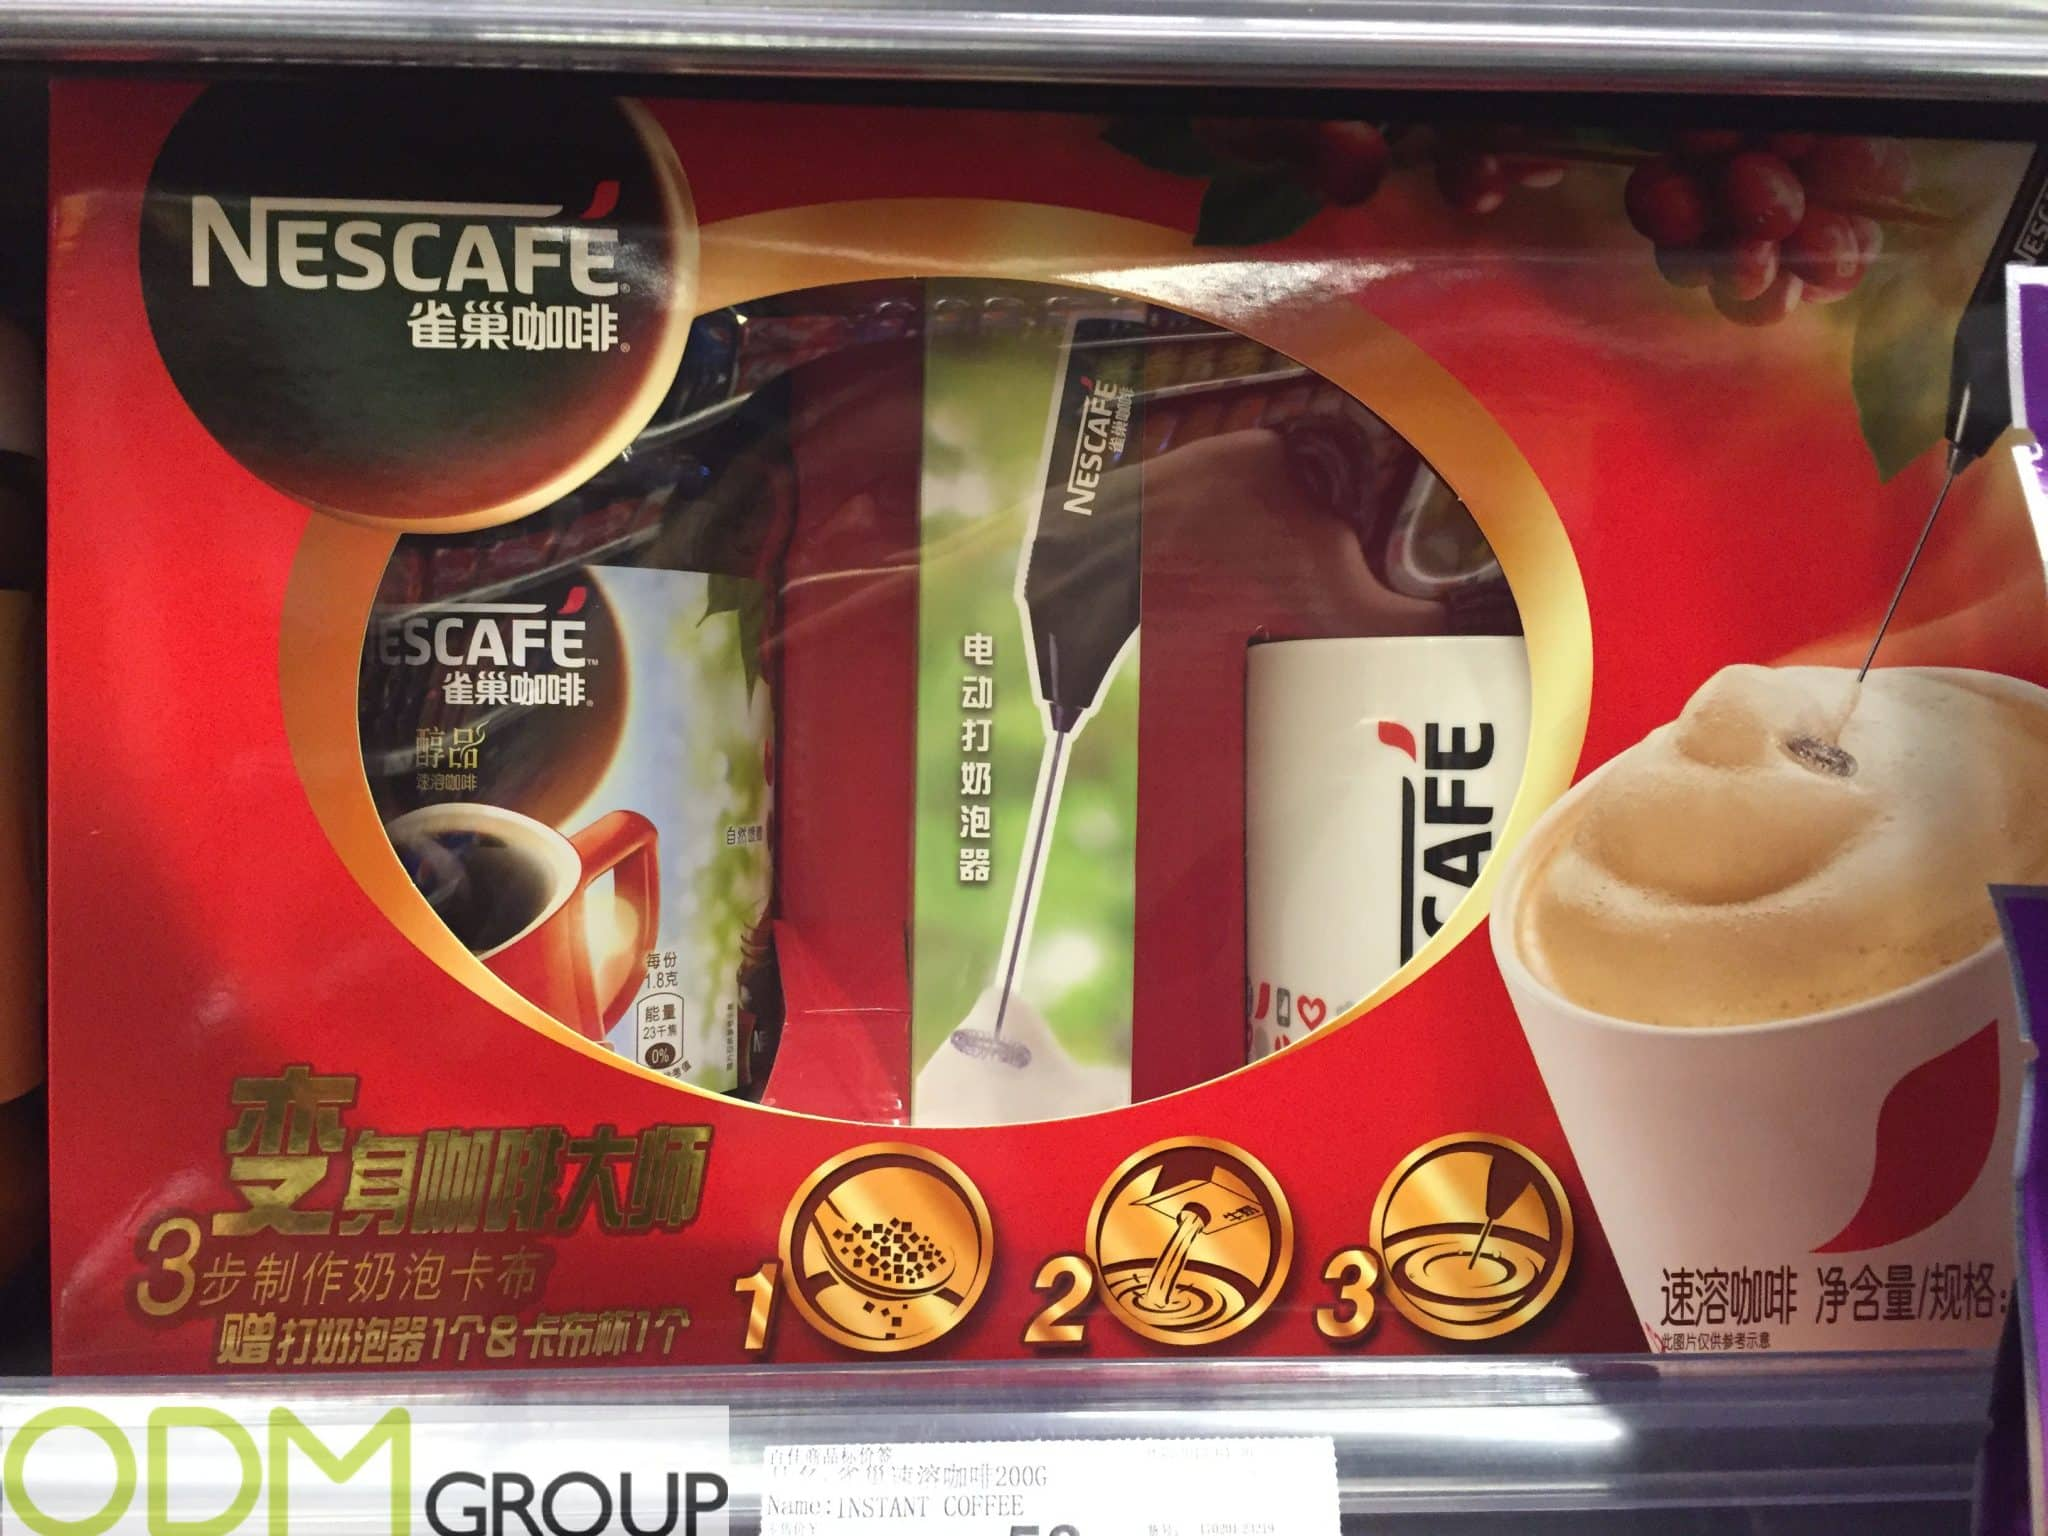 Nescafé On-pack Promotion - Free Milk Frother and Mug